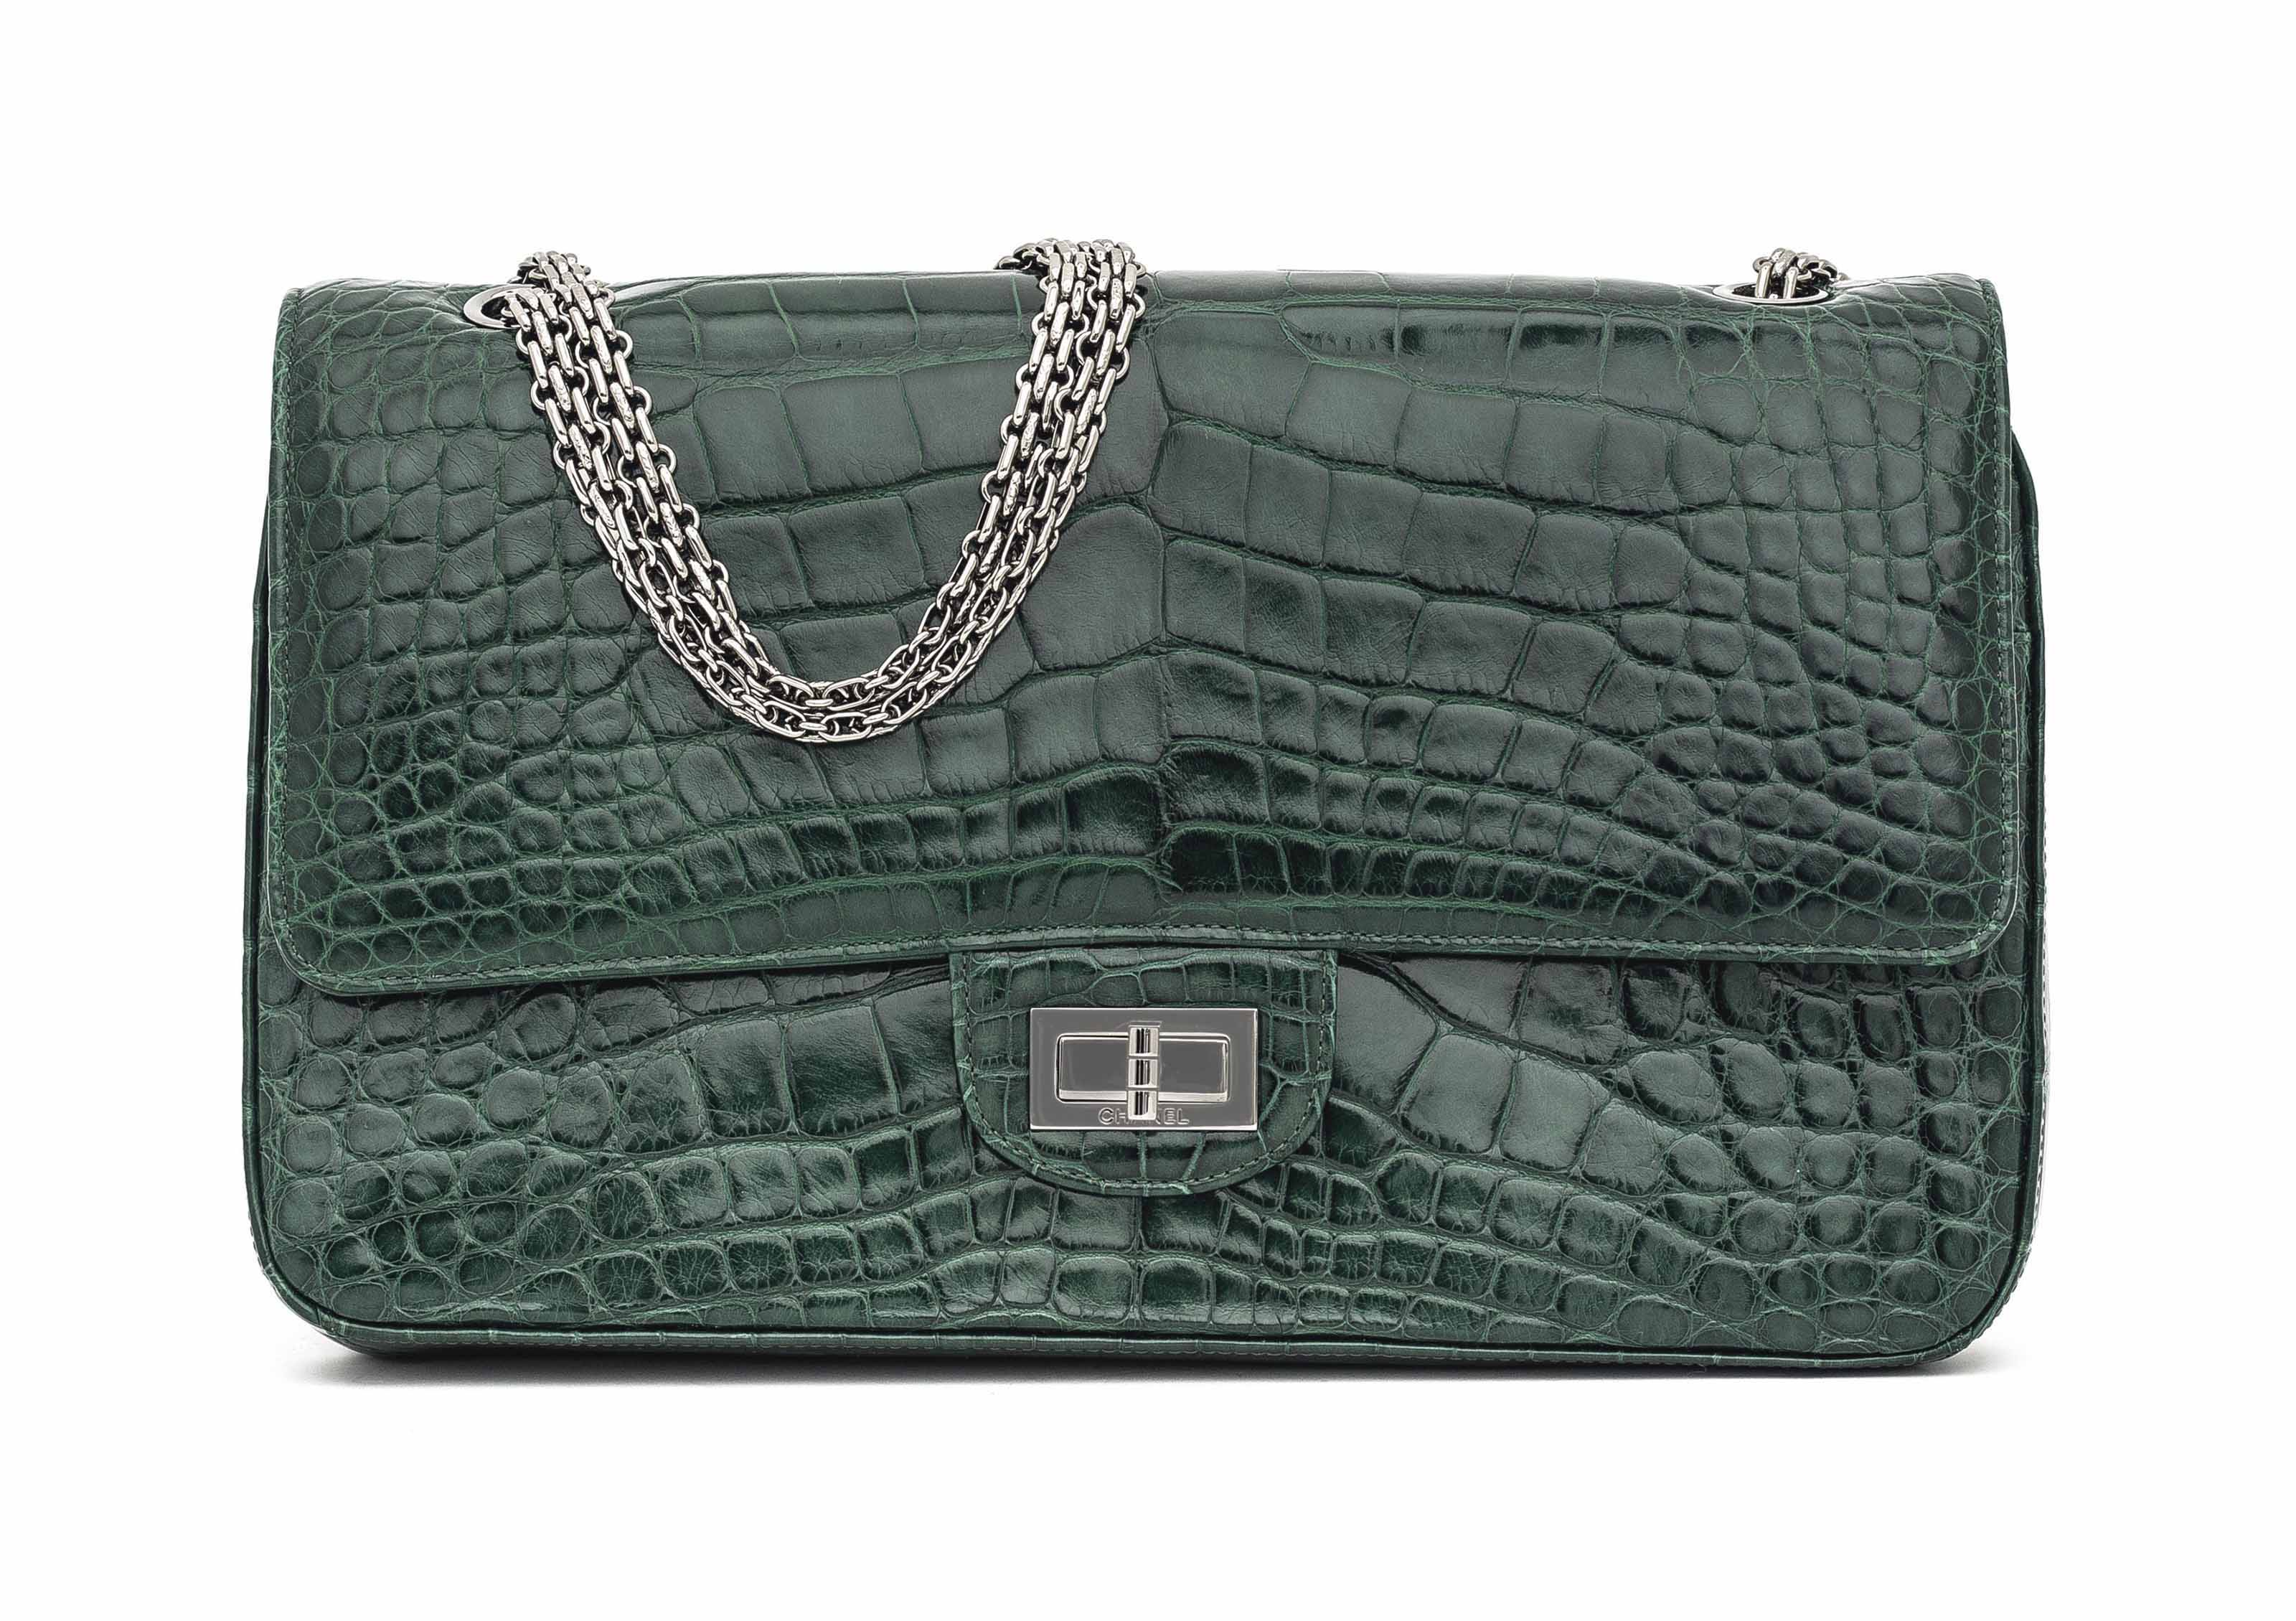 A MATTE DARK GREEN CROCODILE 2.55 DOUBLE FLAP BAG 225 WITH SILVER HARDWARE